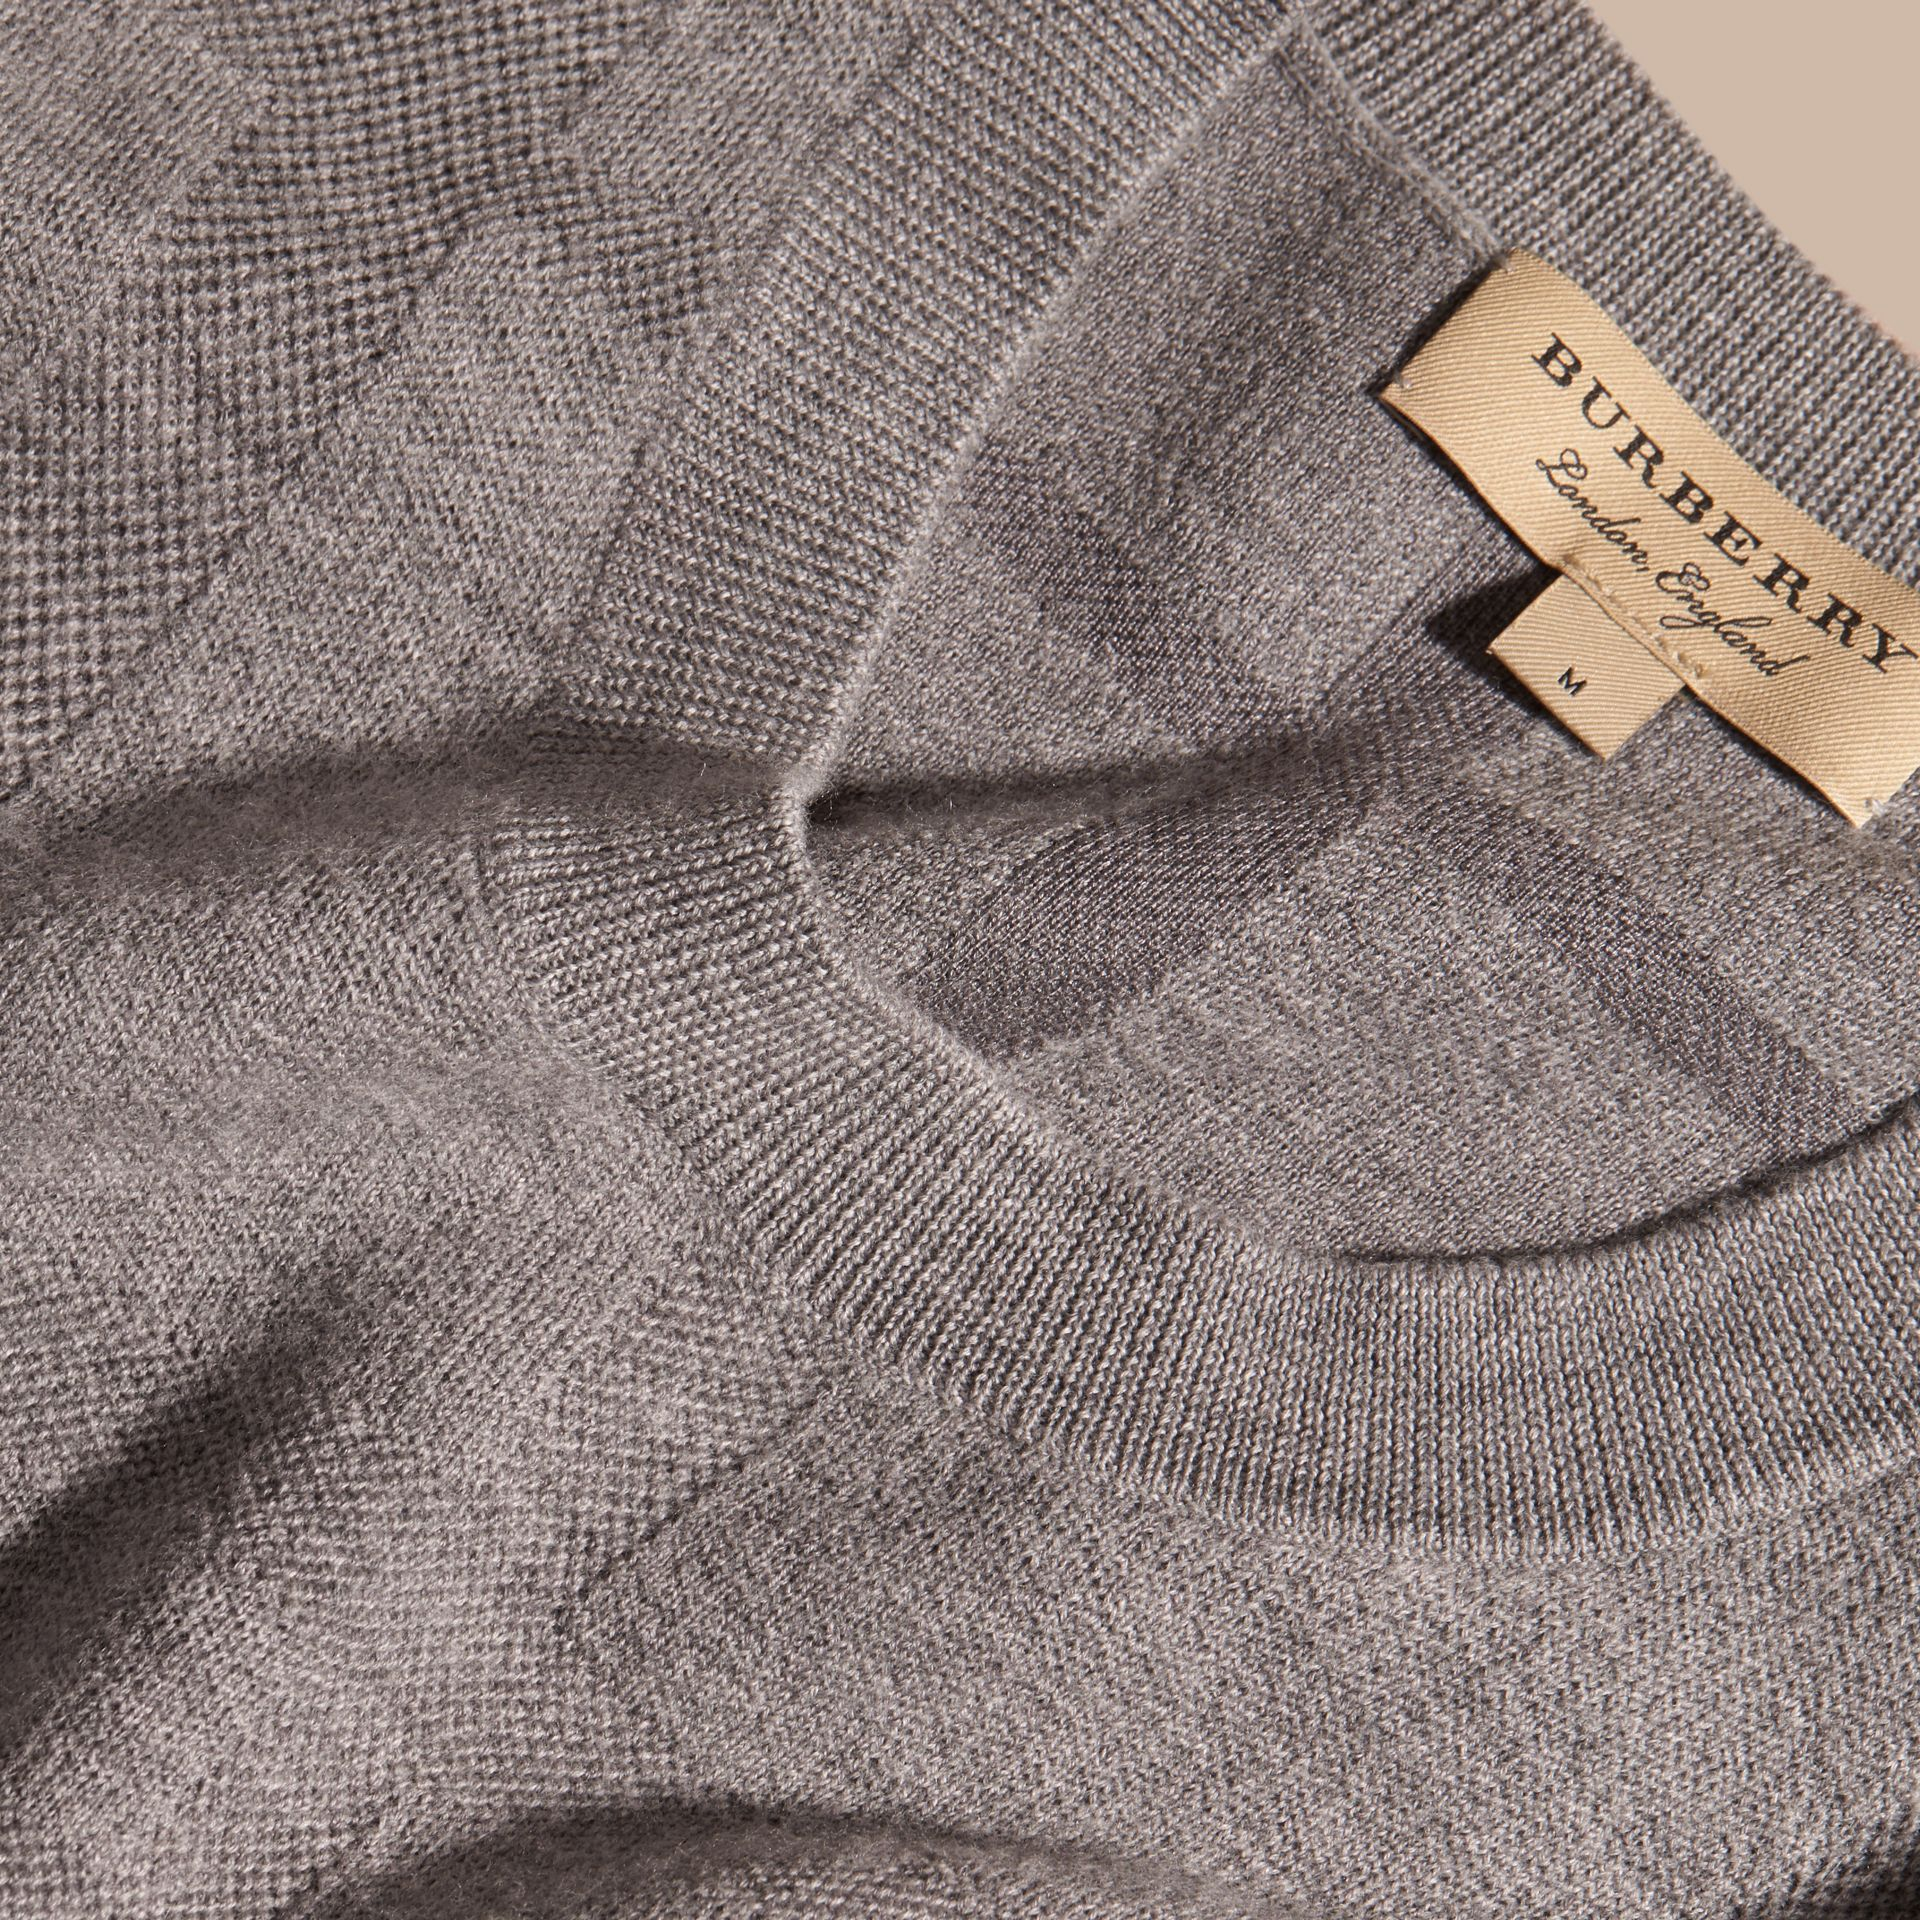 Light grey melange Lightweight Check Jacquard Silk Wool Sweater - gallery image 2